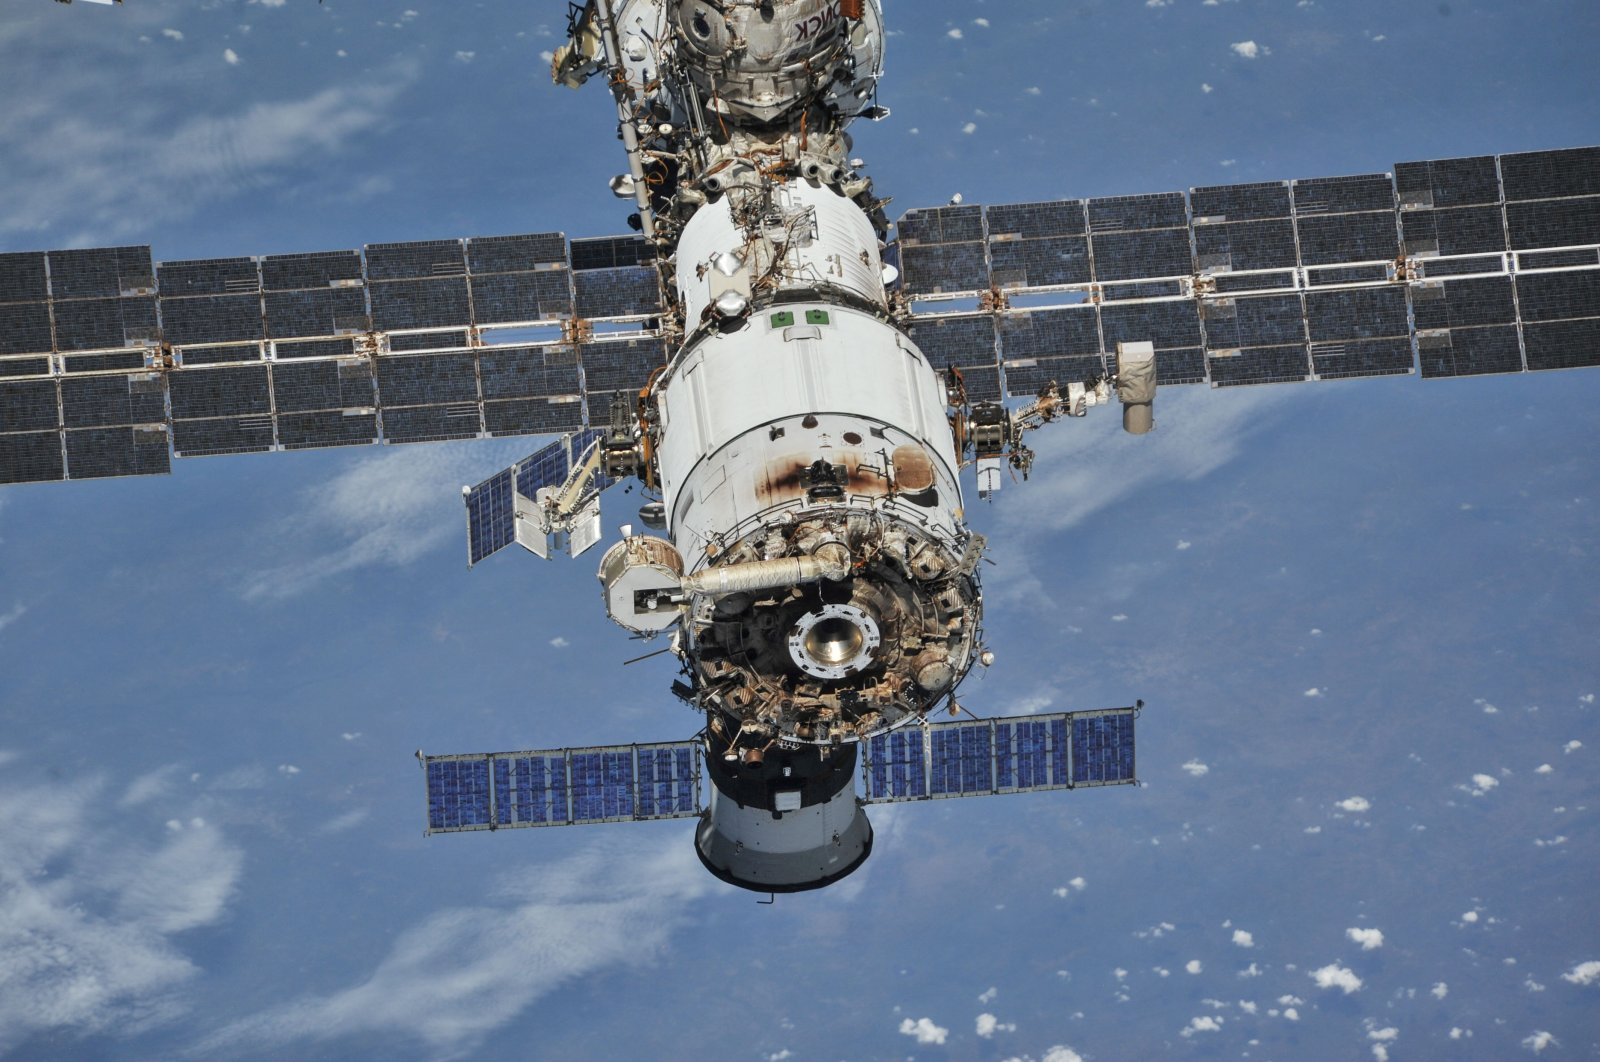 The International Space Station (ISS) photographed by Expedition 56 crew members from a Soyuz spacecraft after undocking, Oct. 4, 2018. (Reuters Photo)